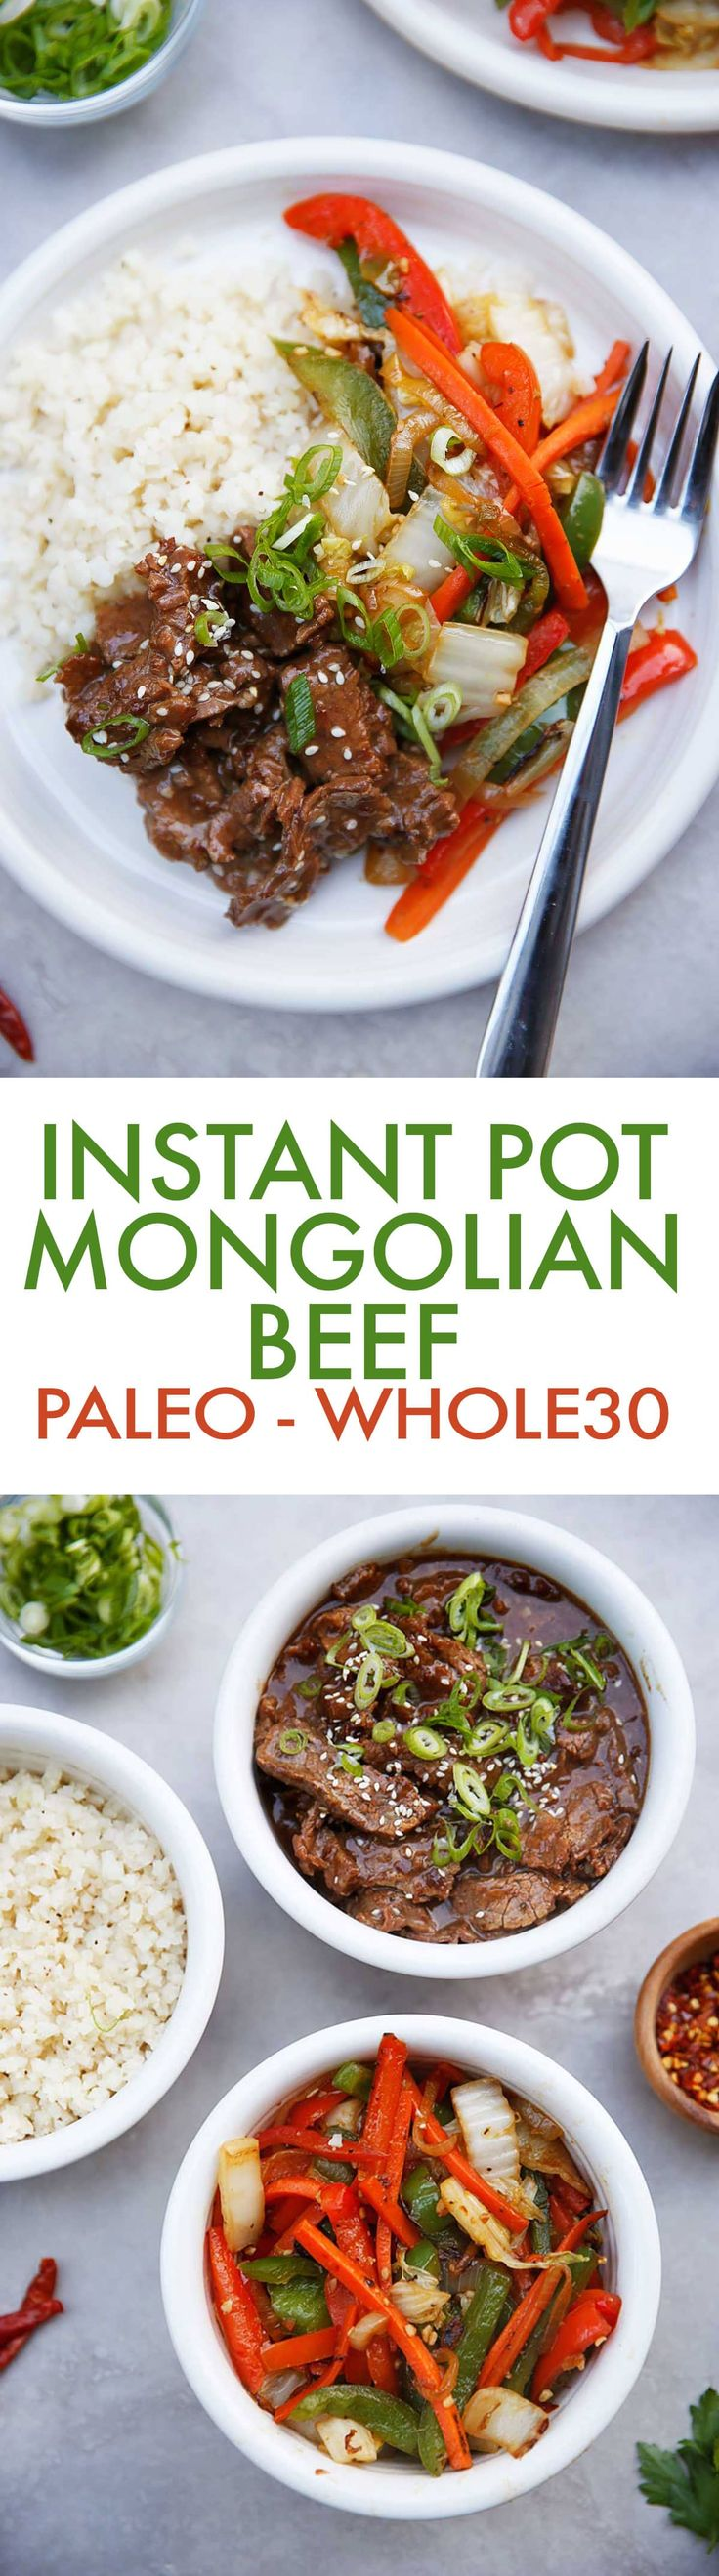 This Instant Pot Paleo Mongolian Beef is a dinner must-make! Made with tender, flavorful beef in a perfect sauce and served with cauliflower rice and delicious veggies. This P.F. Chang's copycat recipe is made gluten-free, soy-free, paleo-friendly, low carb, and whole30-compliant!